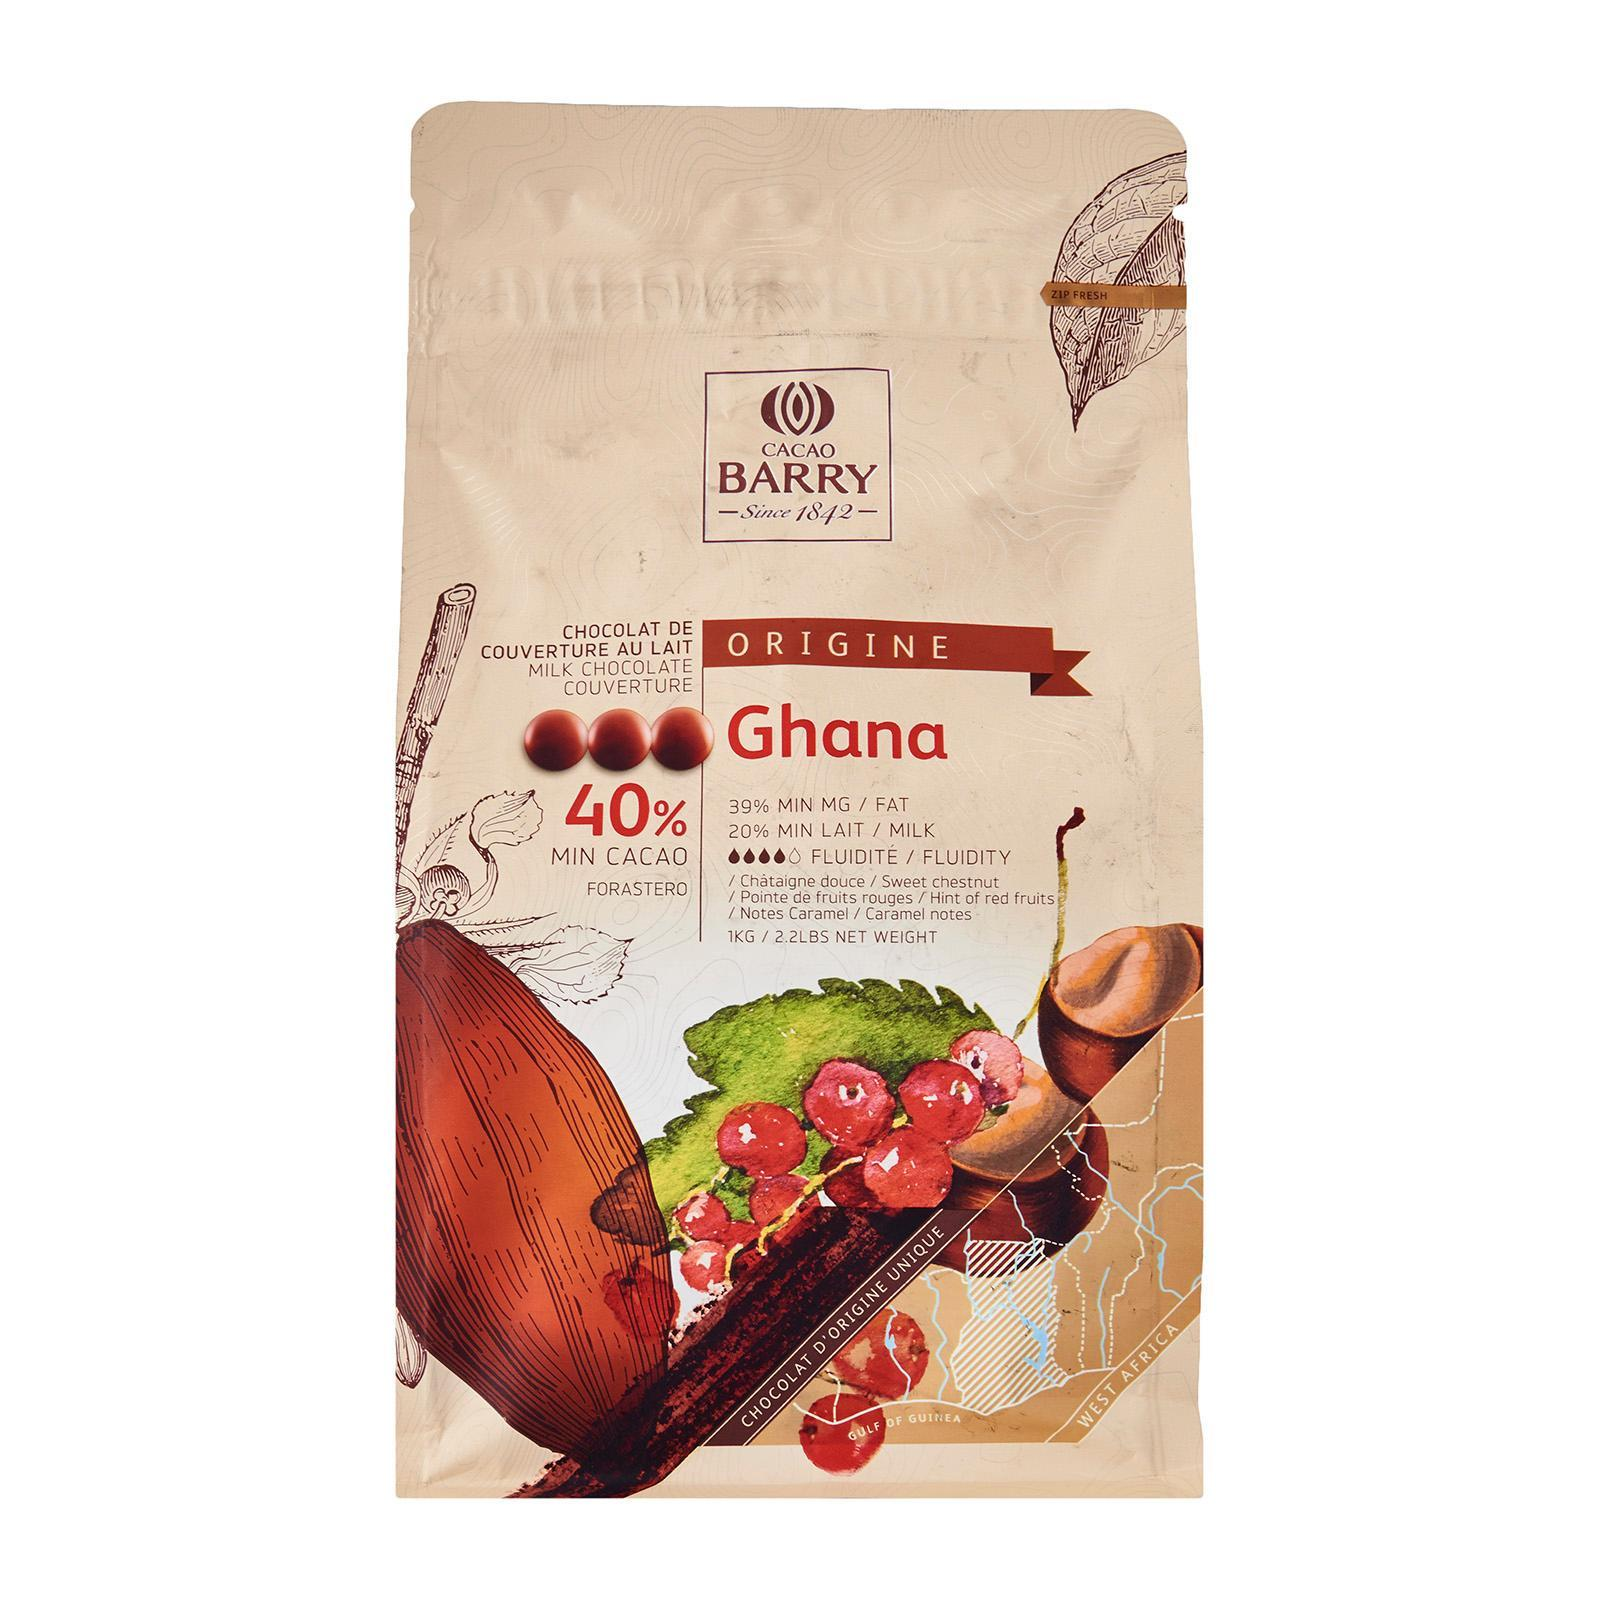 Cacao Barry Choc Couv Milk Cocoa 40.50% Pistoles - Ghana By Redmart.